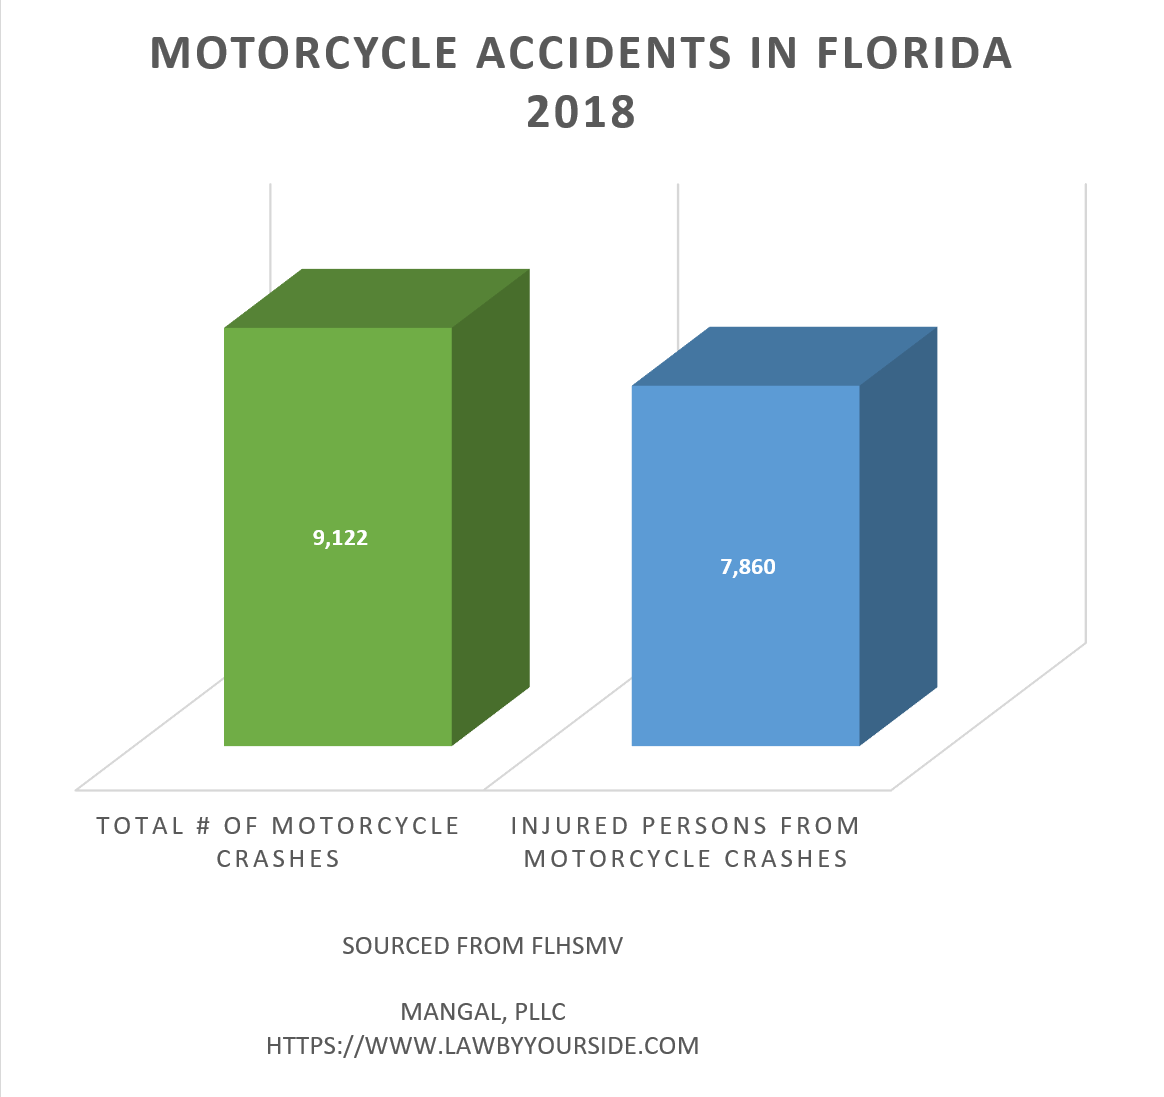 MotorCycle Accident Stats - MANGAL, PLLC